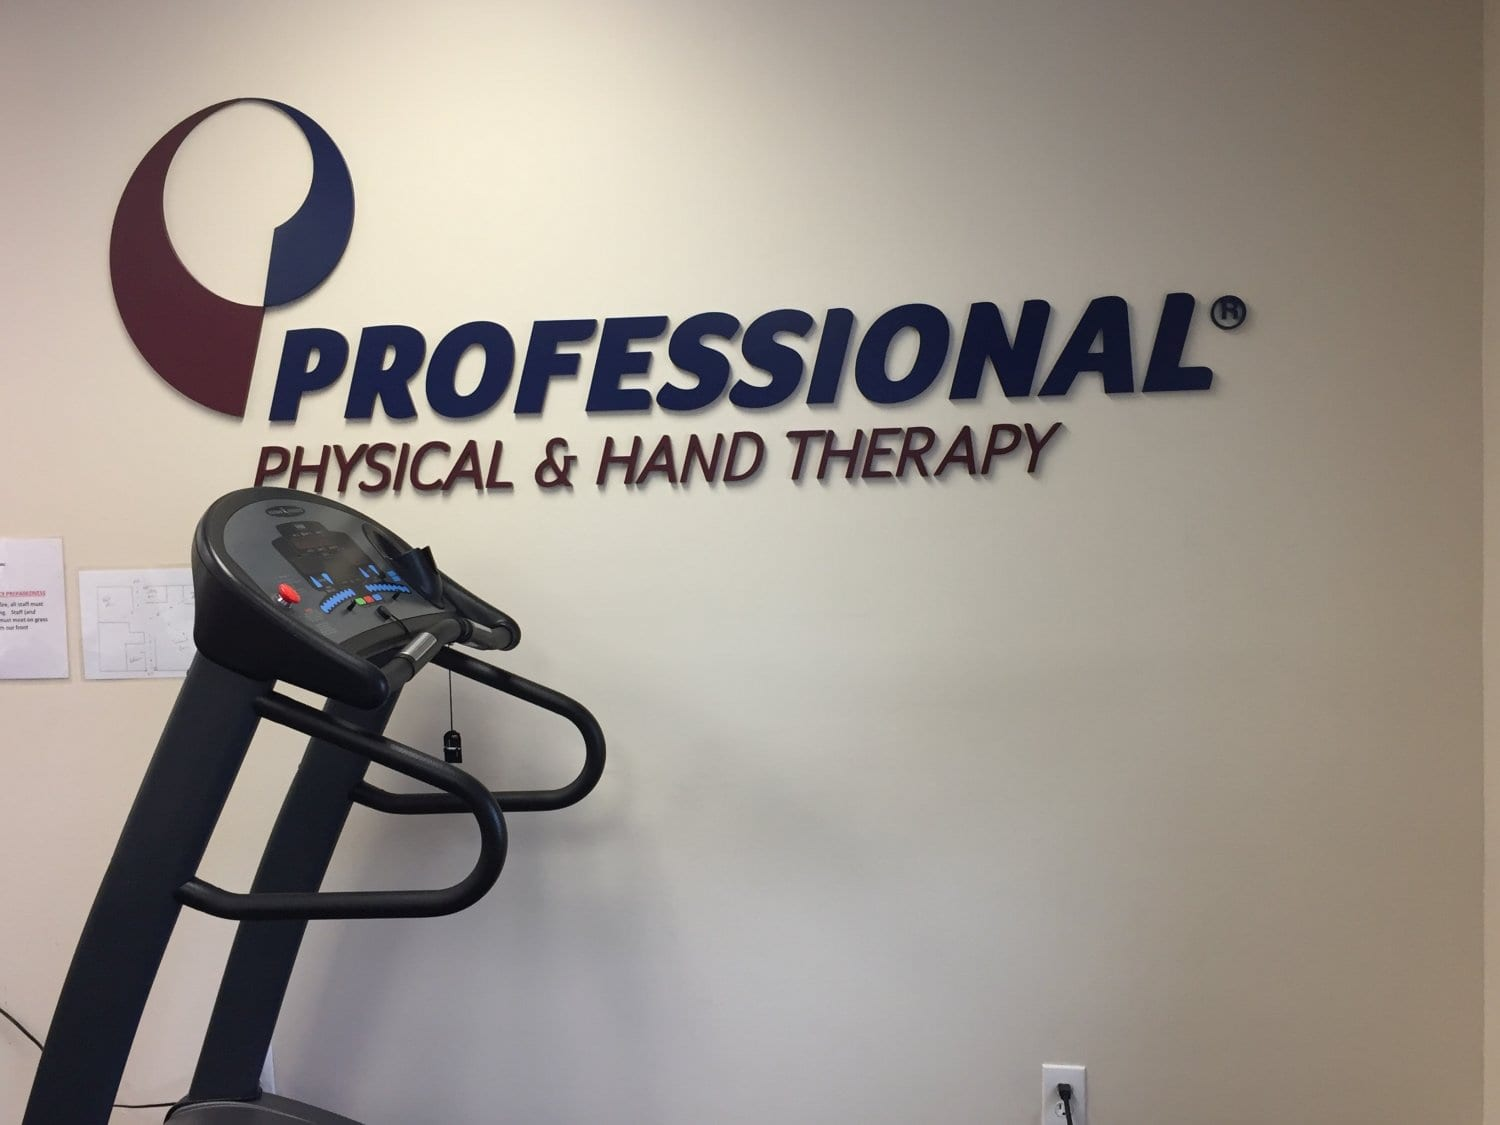 Here is a photo of the Professional Physical Therapy sign on the wall at our clinic in Medford, New York in Long Island in Suffolk County.